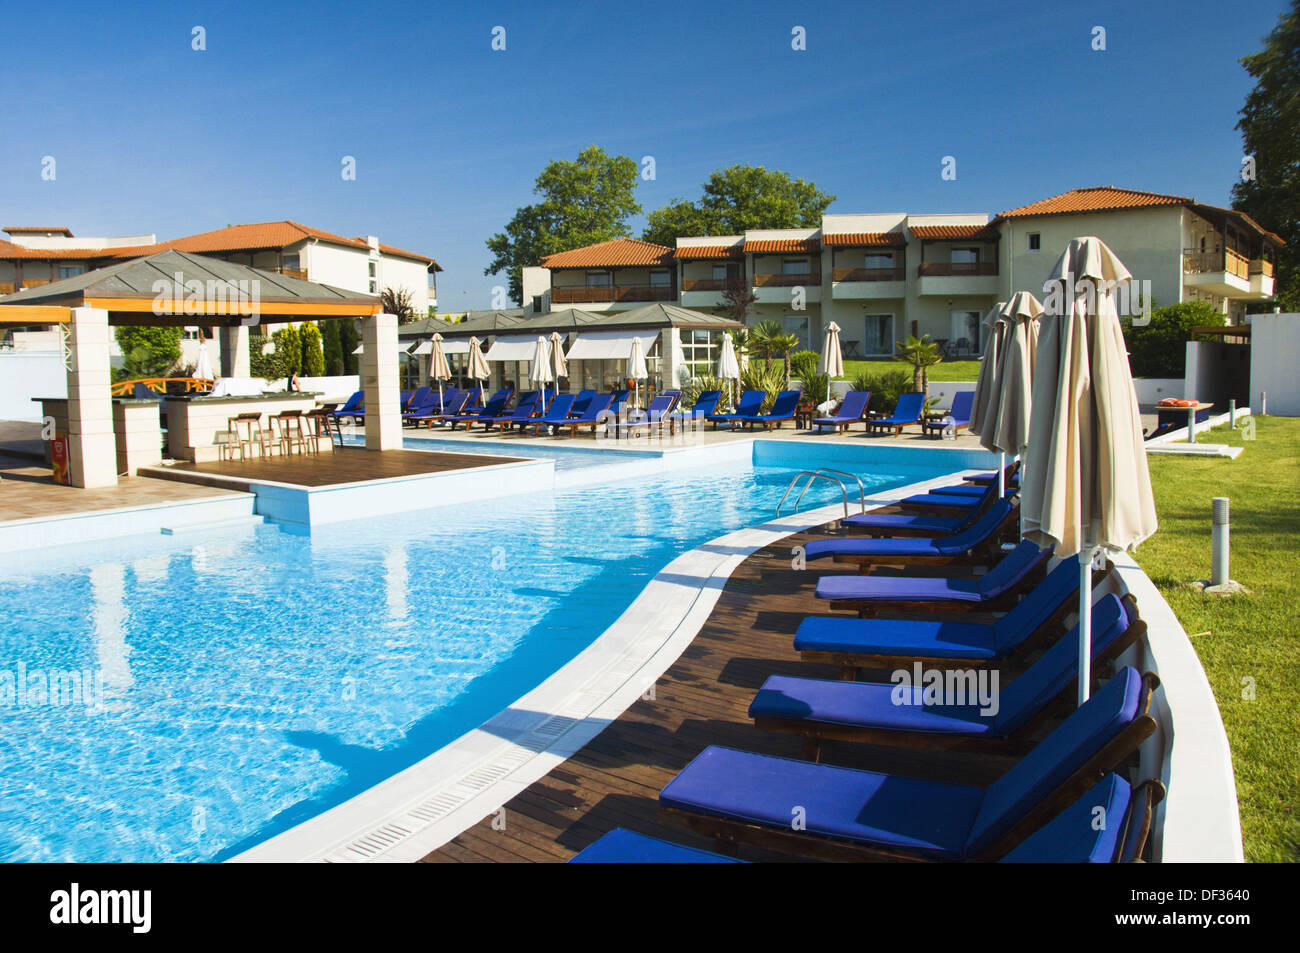 Pool Area With Blue Lounge Chairs At The Dion Palace Resort In Litohoro,  Greece